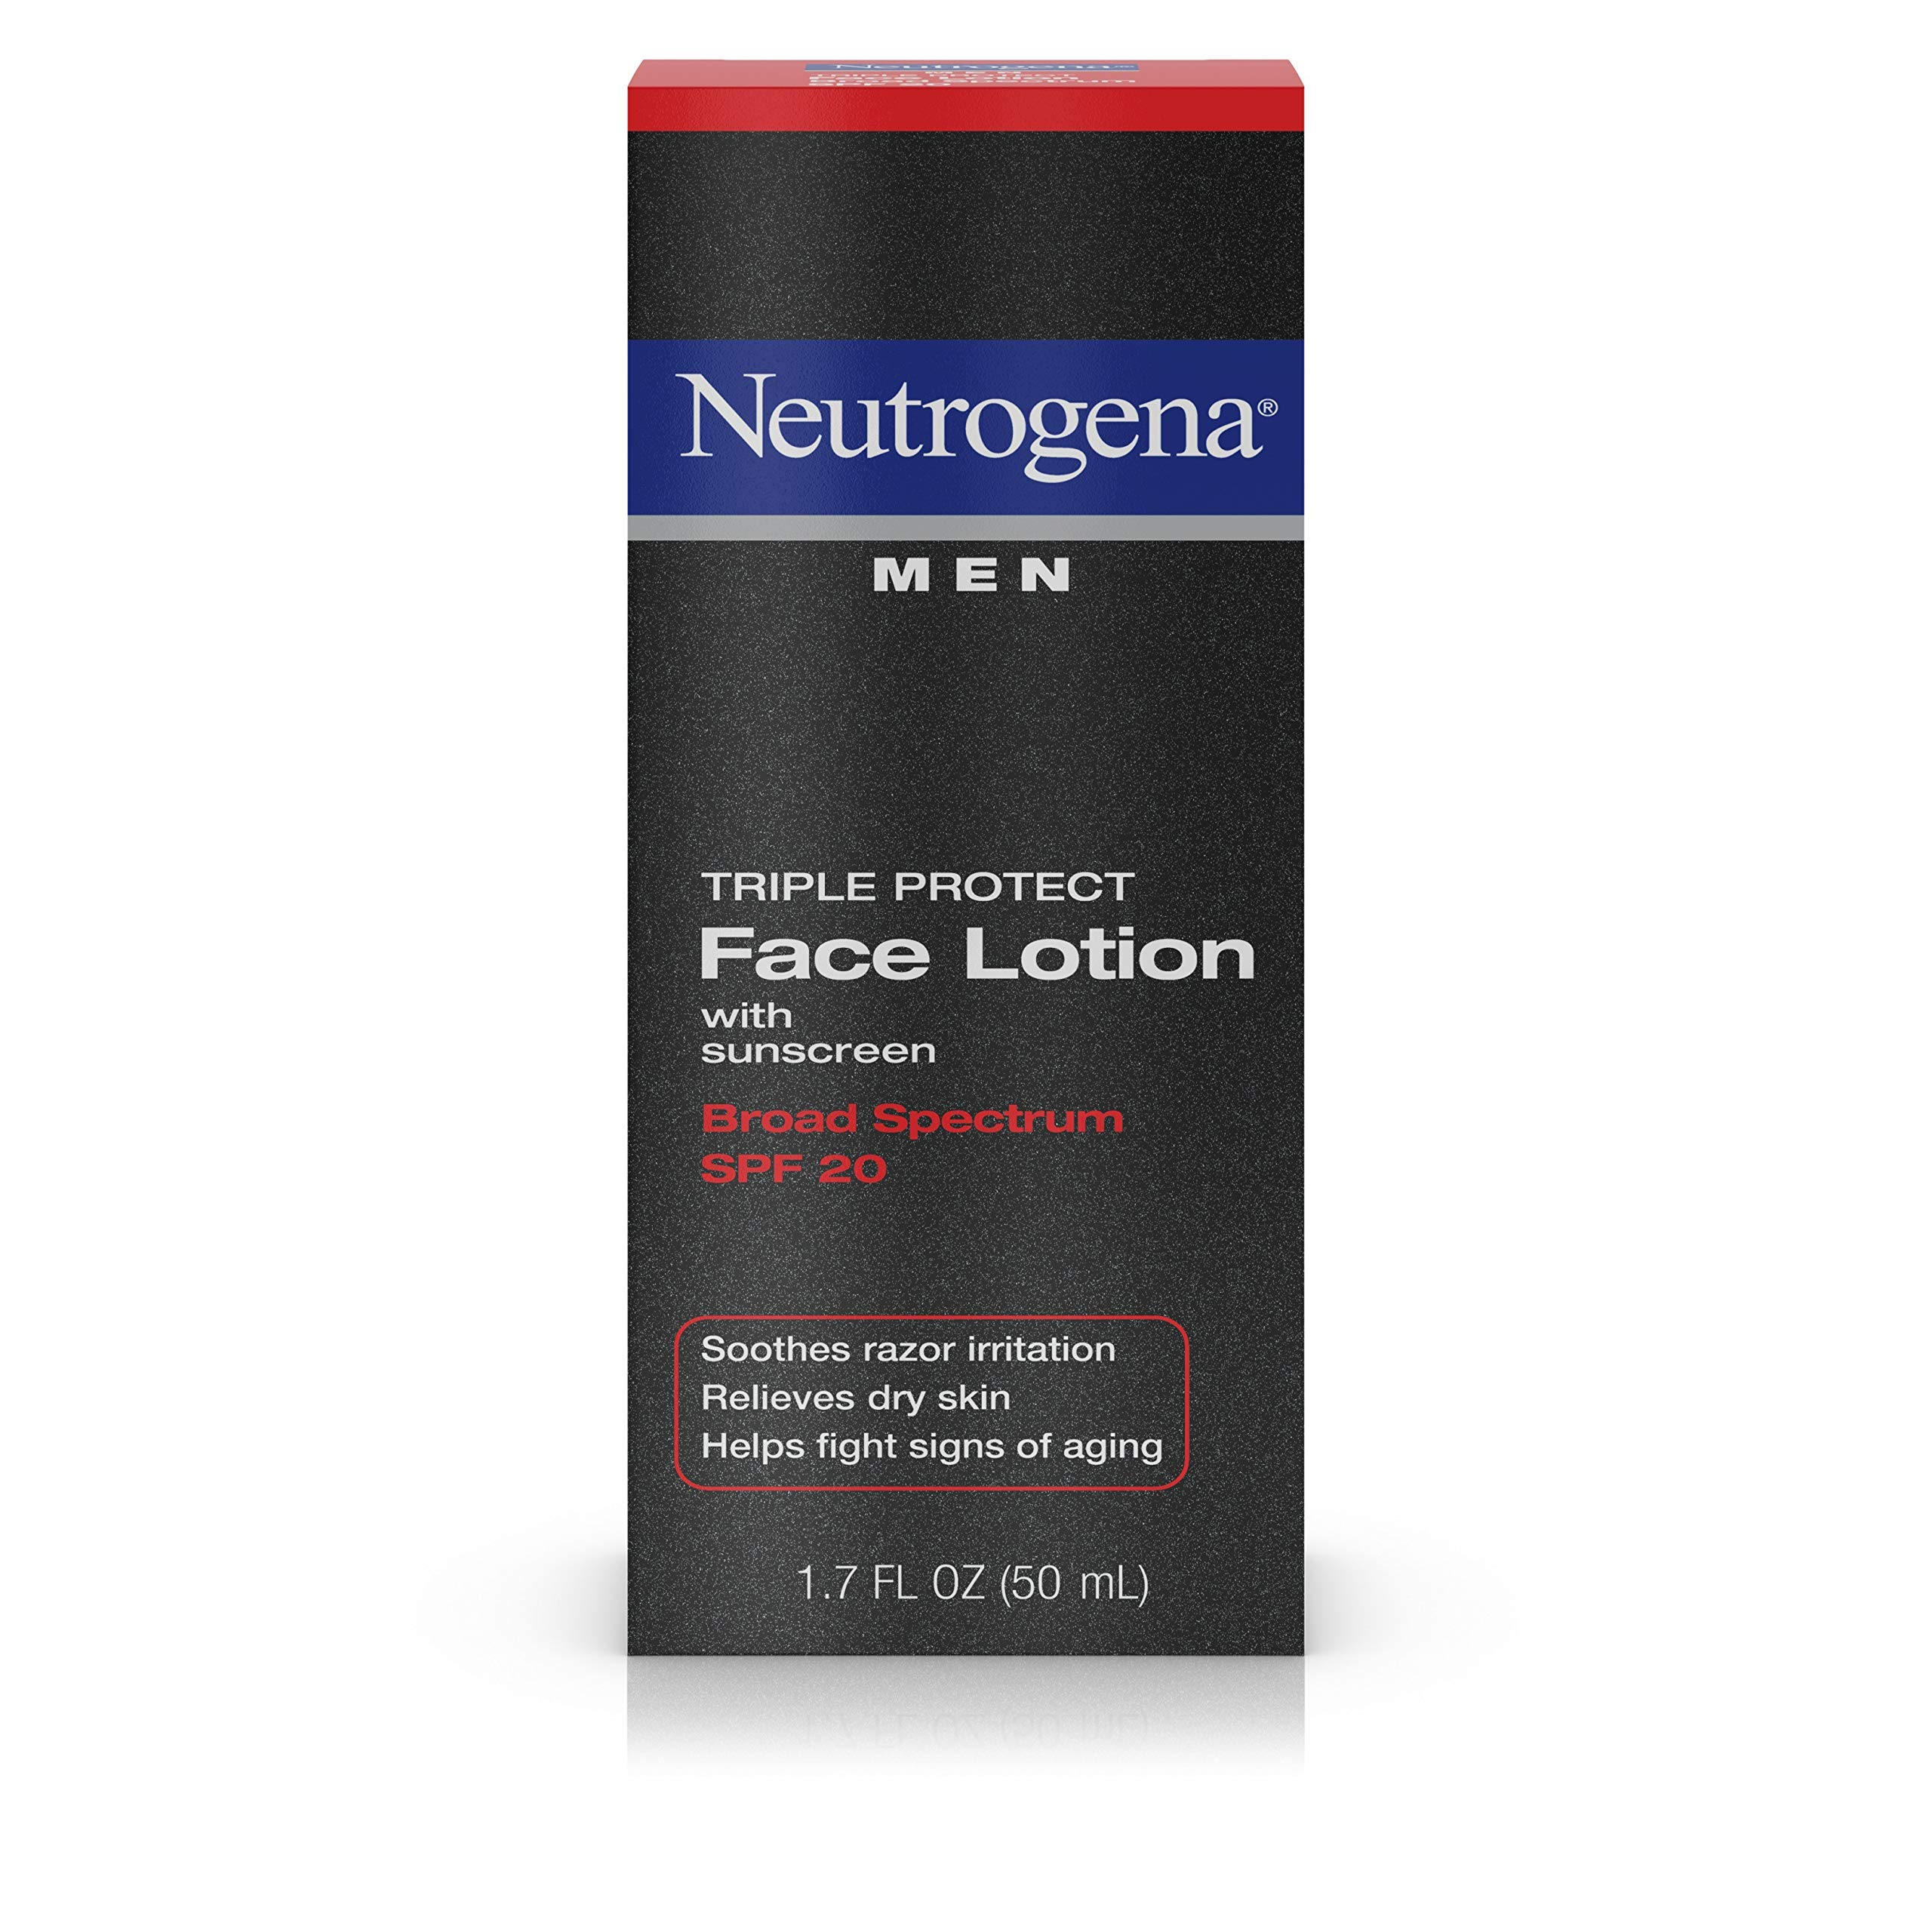 Neutrogena Triple Protect Men's Daily Face Lotion with Broad Spectrum SPF 20 Sunscreen, Moisturizer to Fight Aging Signs, Soothe Razor Irritation & Relieve Dry Skin, 1.7 fl. Oz (Pack of 2) by Neutrogena (Image #1)